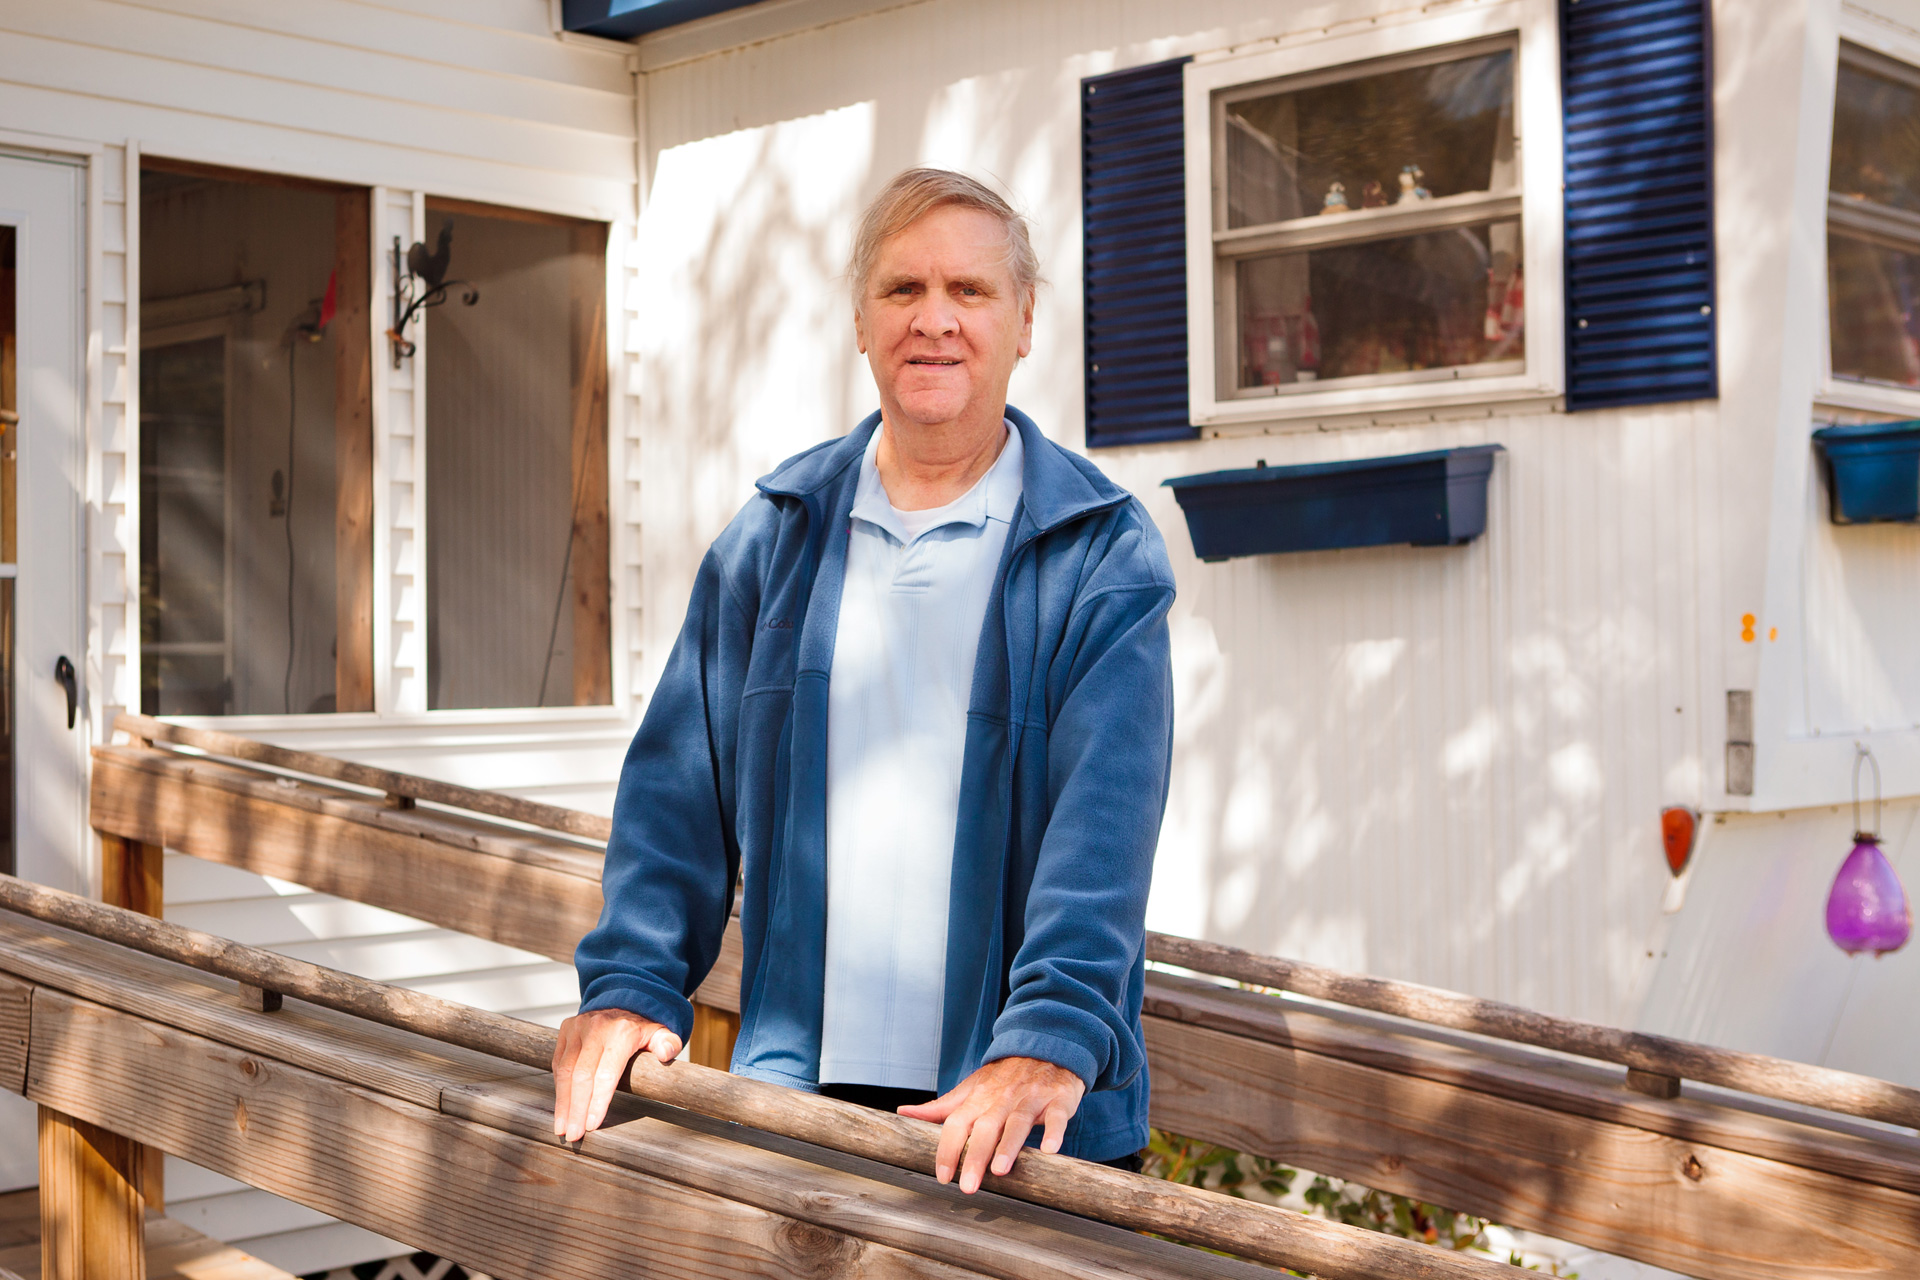 Man standing on porch, holding railing